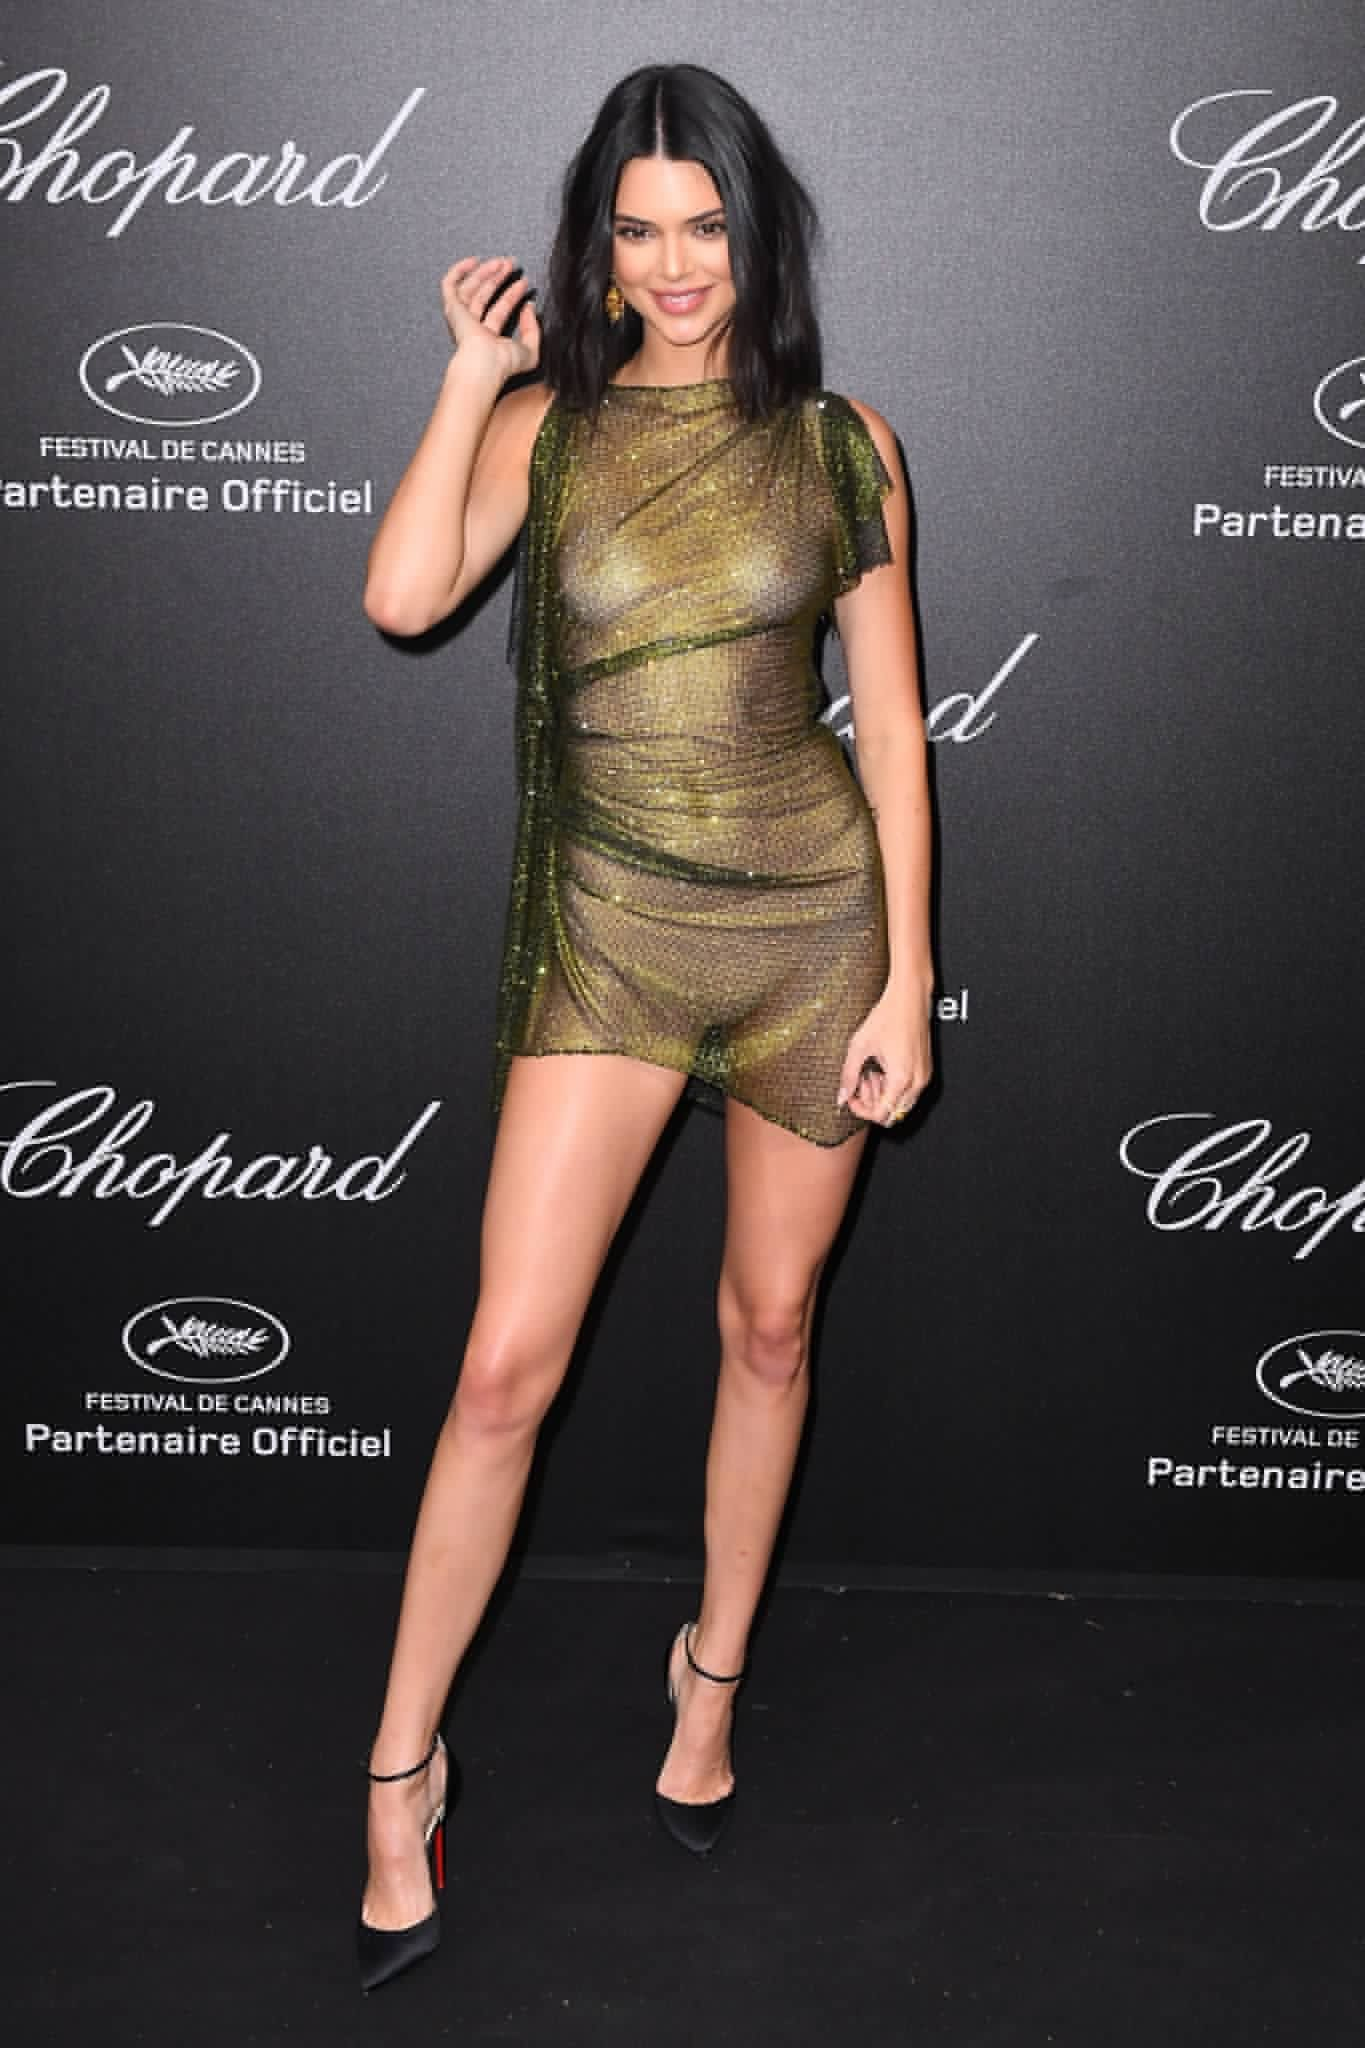 5 11 5 11 18 Kendall Jenner Attends The Chopard Party In Cannes